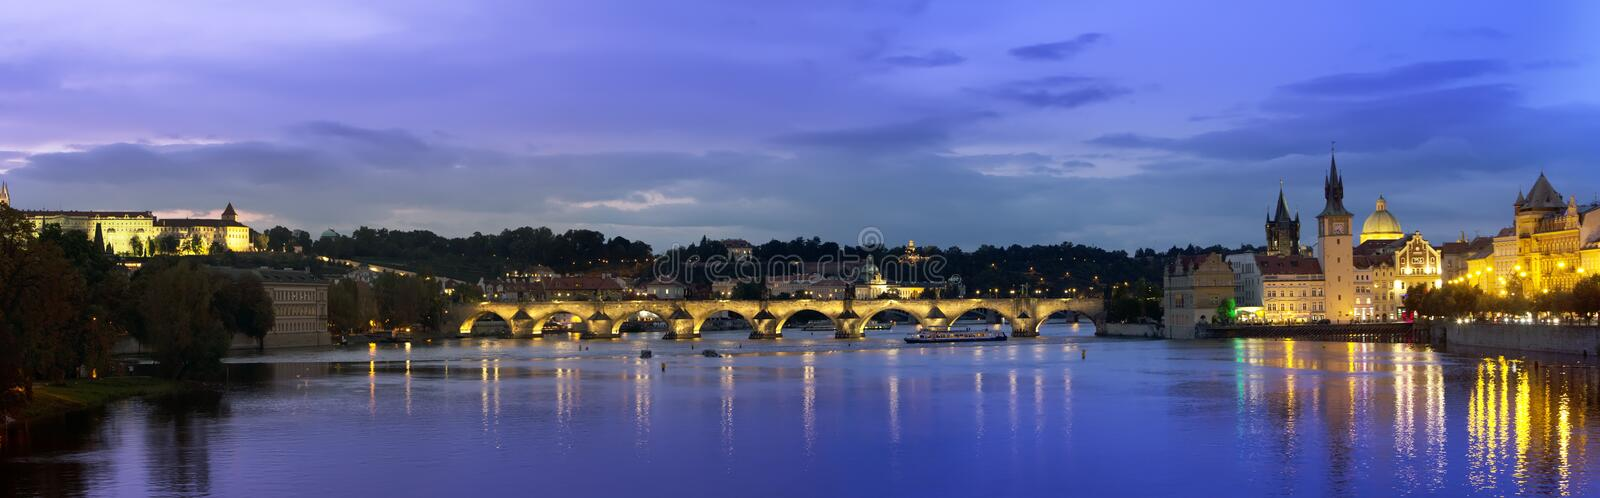 Beautiful Cityscape of Prague at night with Charles BridgeKarluv Most over Vltava river and Prague Castle, Czech Republic royalty free stock photo